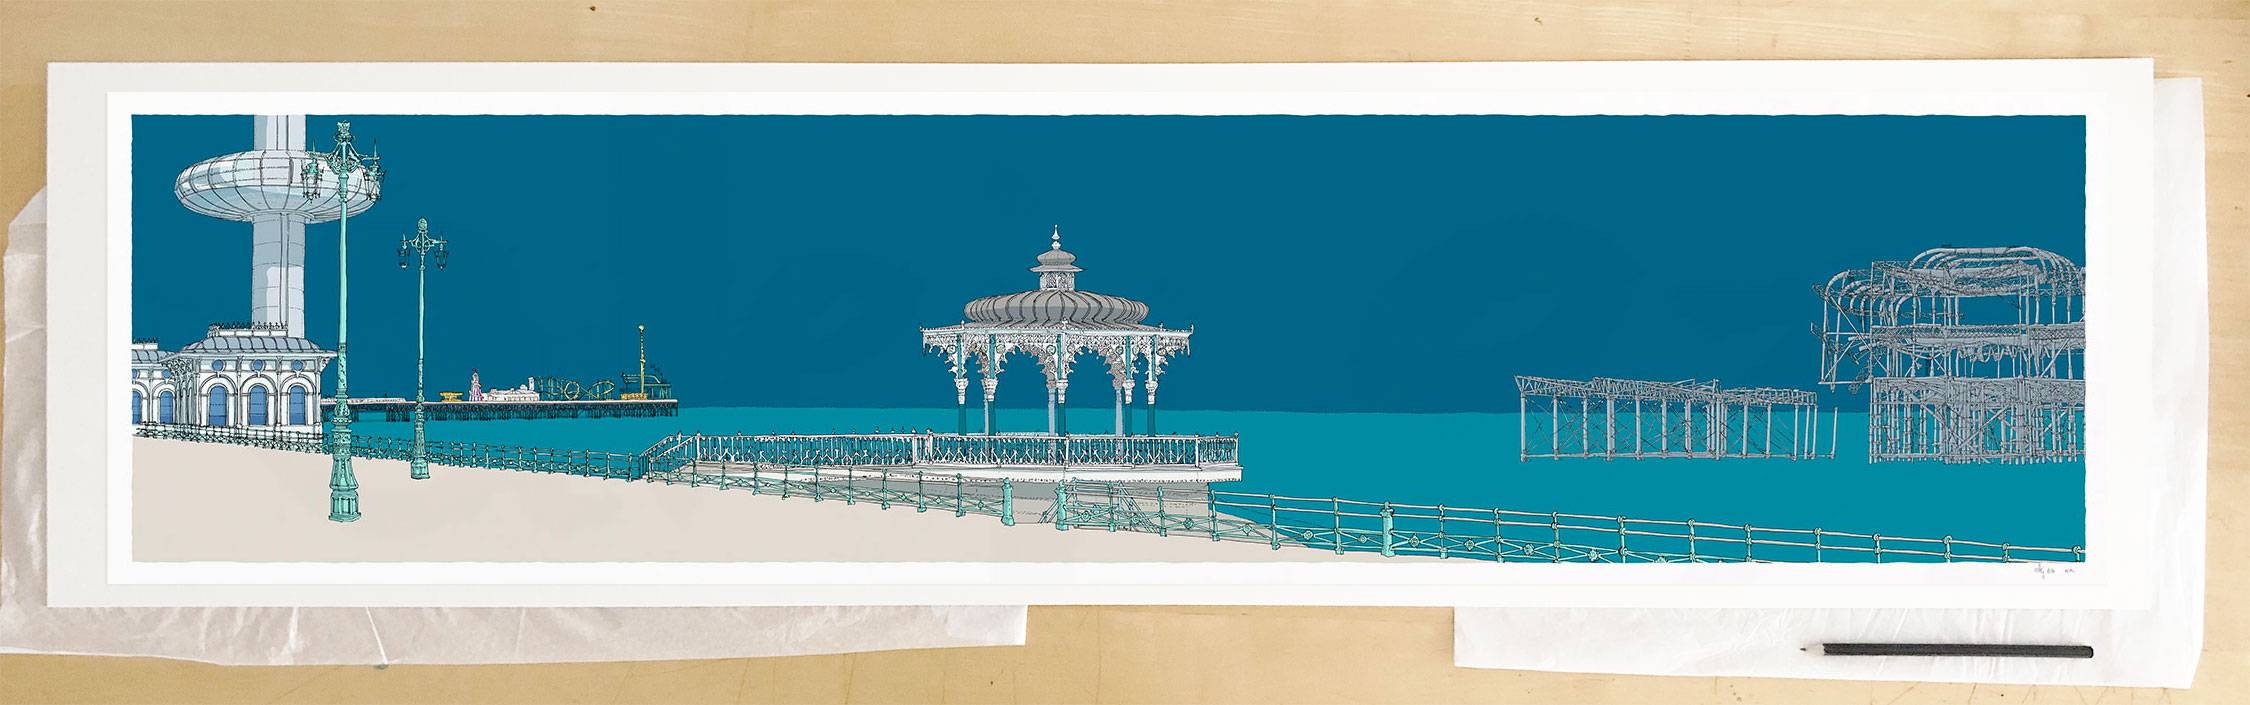 Fine art print by UK artist alej ez titled I360, Palace Pier, The Bandstand and West Pier Ocean Blue